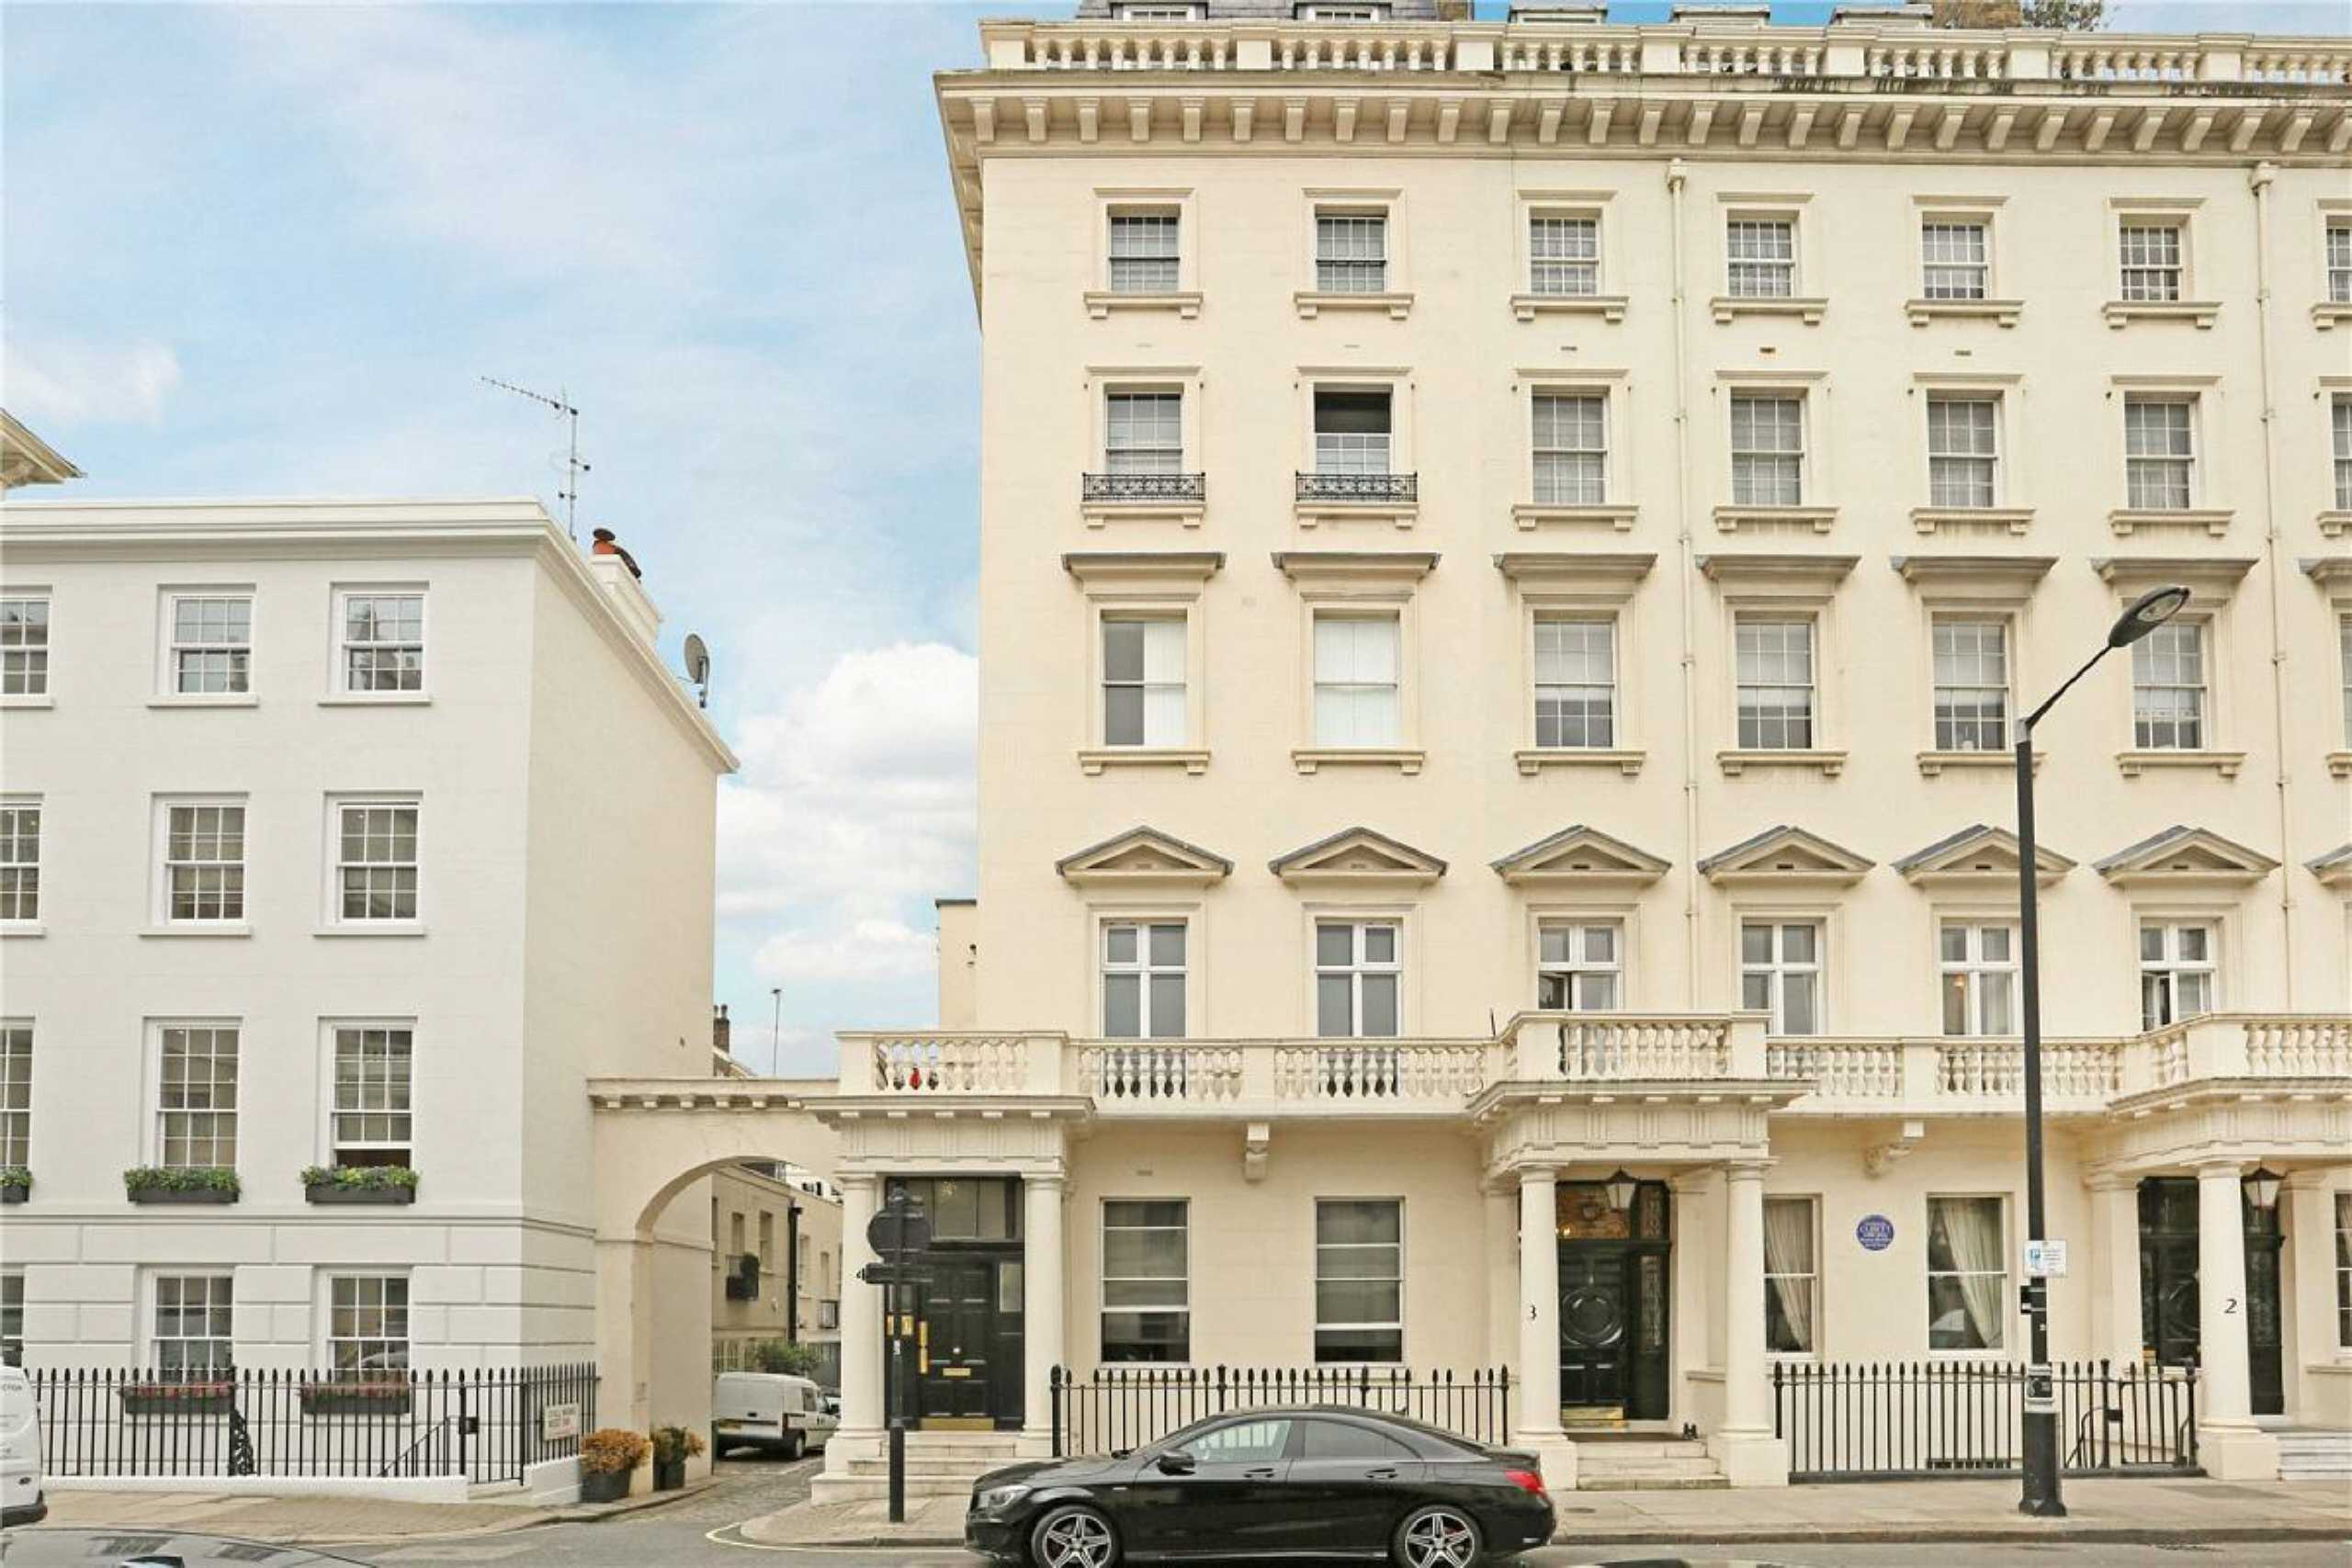 2 Bedrooms Apartment Flat for sale in Lyall Street, Eaton Square, Belgravia, London, SW1X